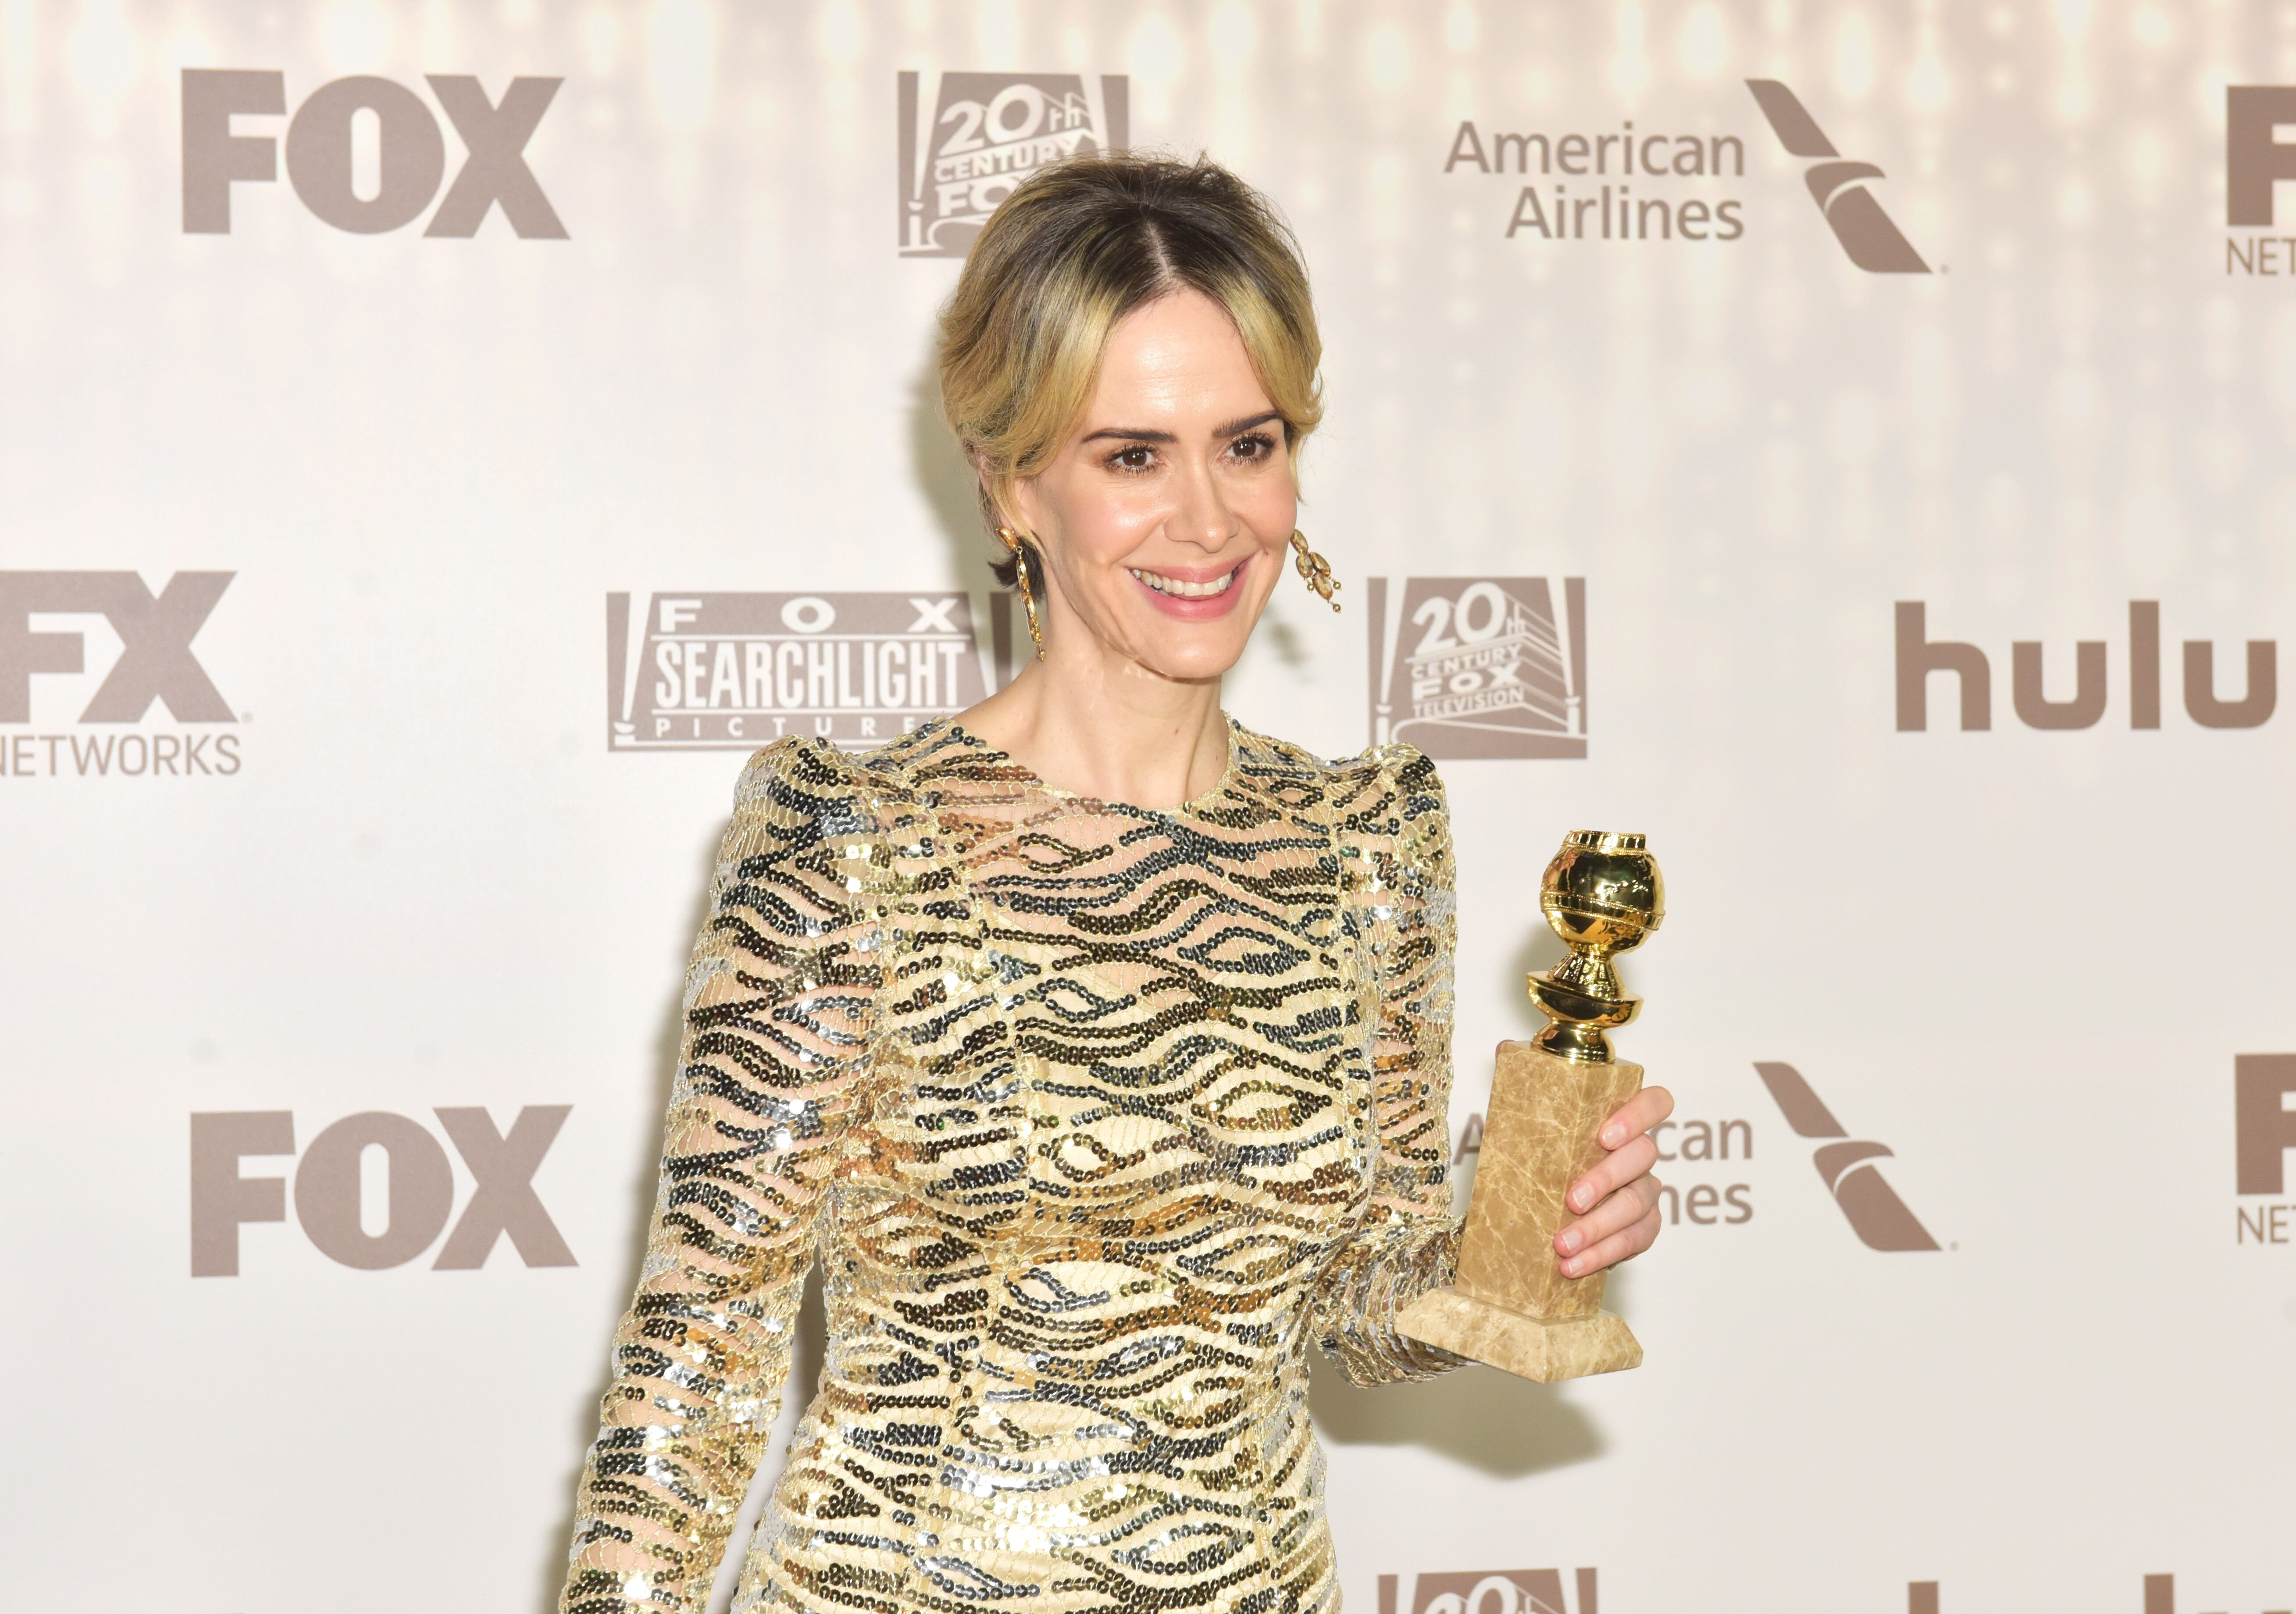 Sarah Paulson, winner of the Best Performance in a Miniseries or Television Film, for 'The People v. O.J. Simpson- American Crime Story', attends FOX and FX's 2017 Golden Globe Awards. | Source: Getty Images